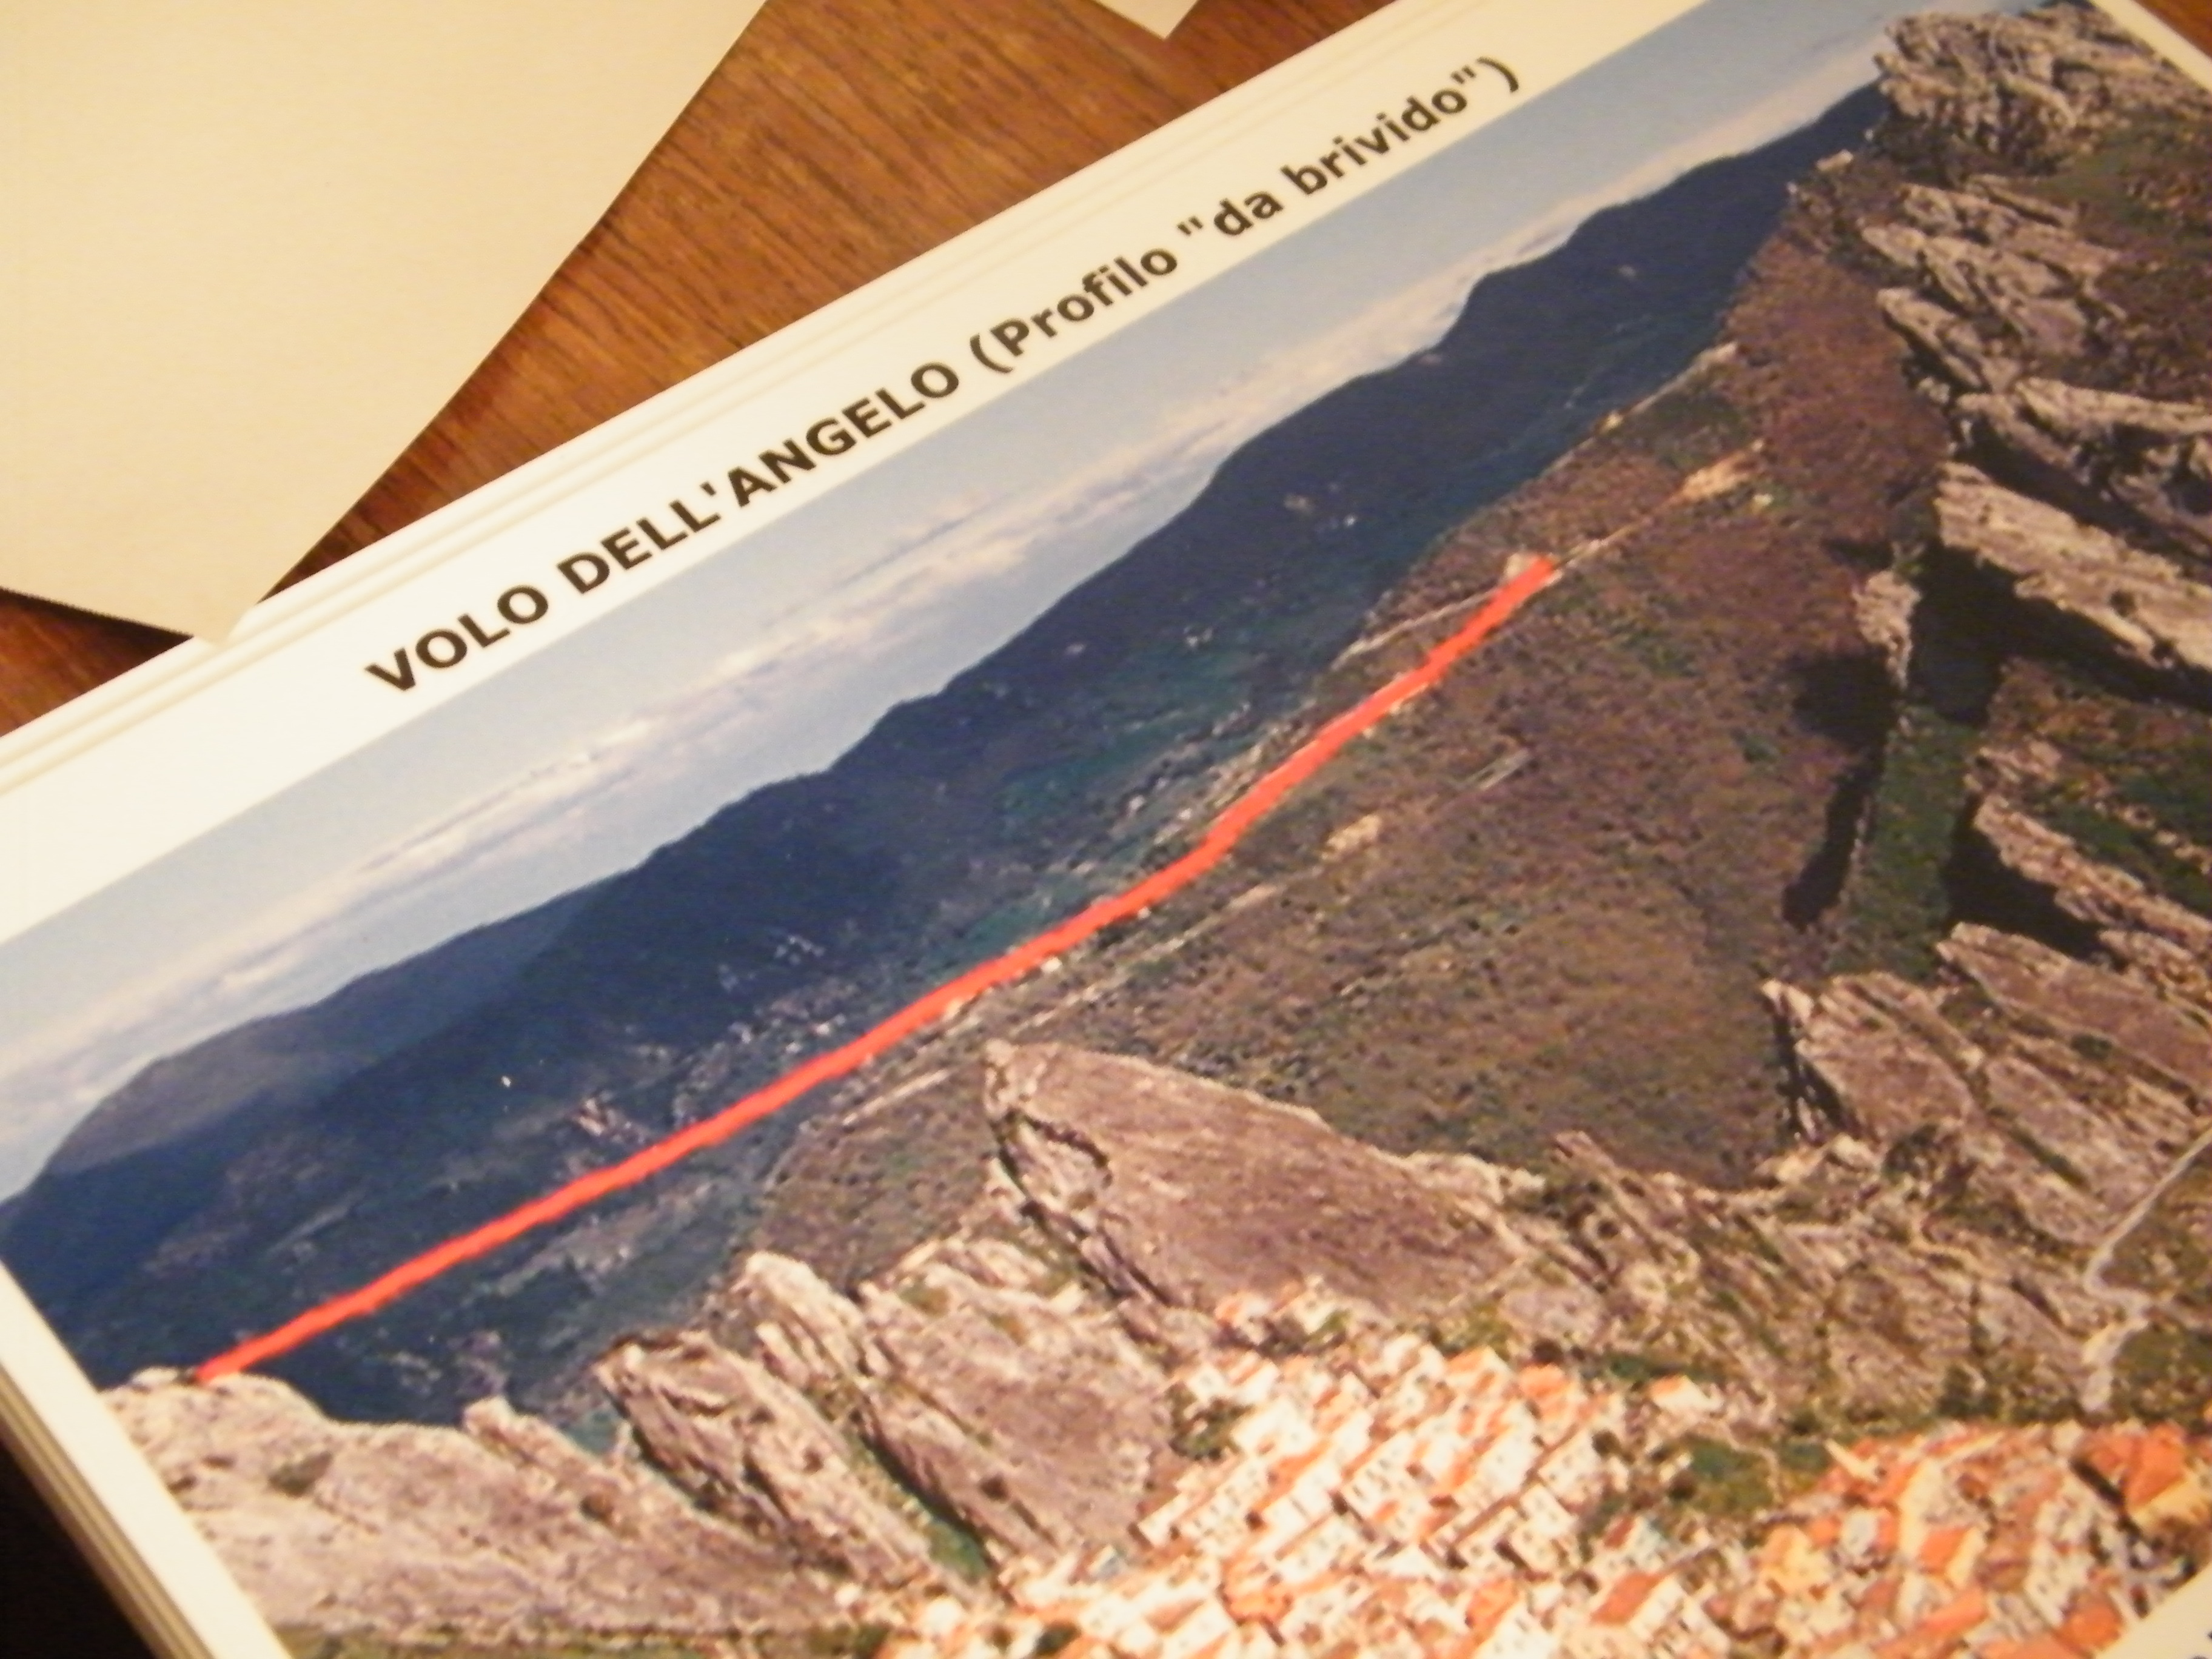 Volo dell'Angelo, pannello in forex con Braille, Progetto Welcome